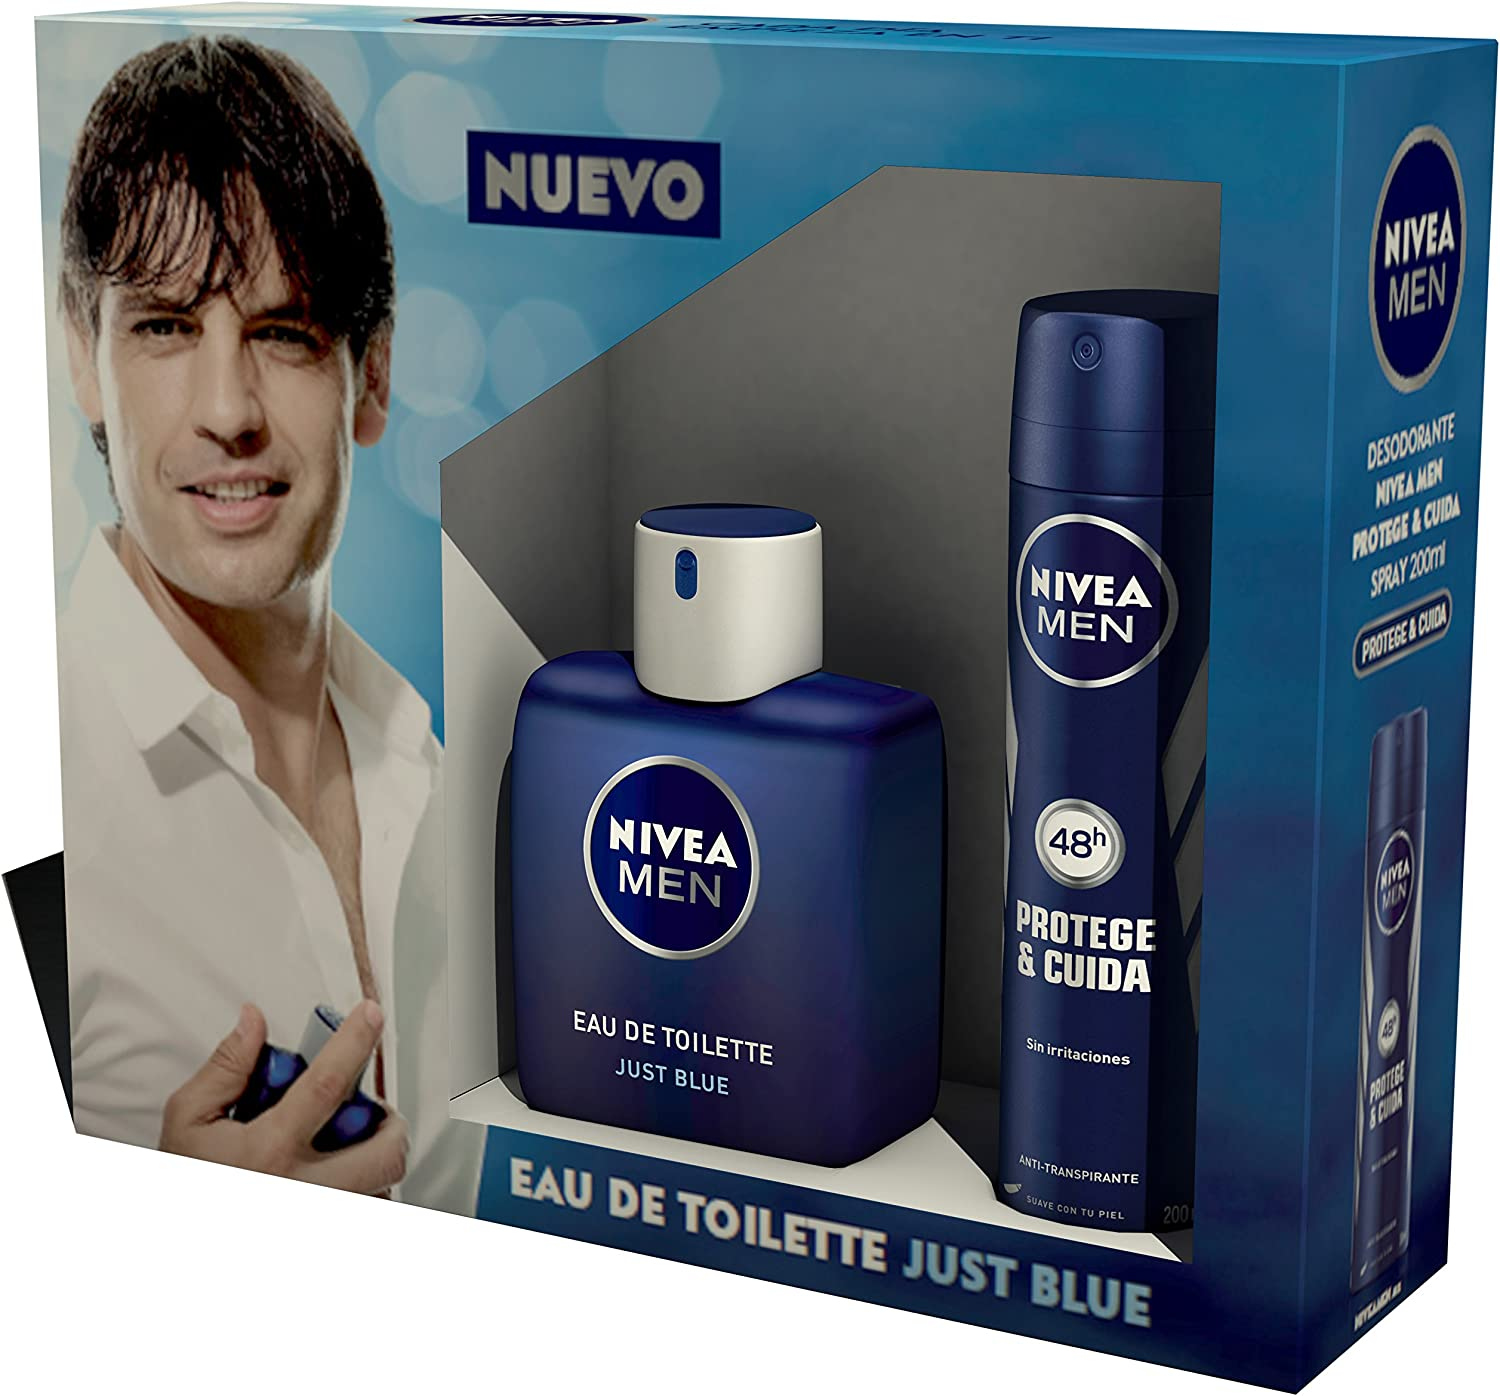 NIVEA MEN Estuche de regalo 2 productos en un pack para hombre con colonia masculina y desodorante en spray, caja de regalo con una fragancia exclusiva: Amazon.es: Belleza